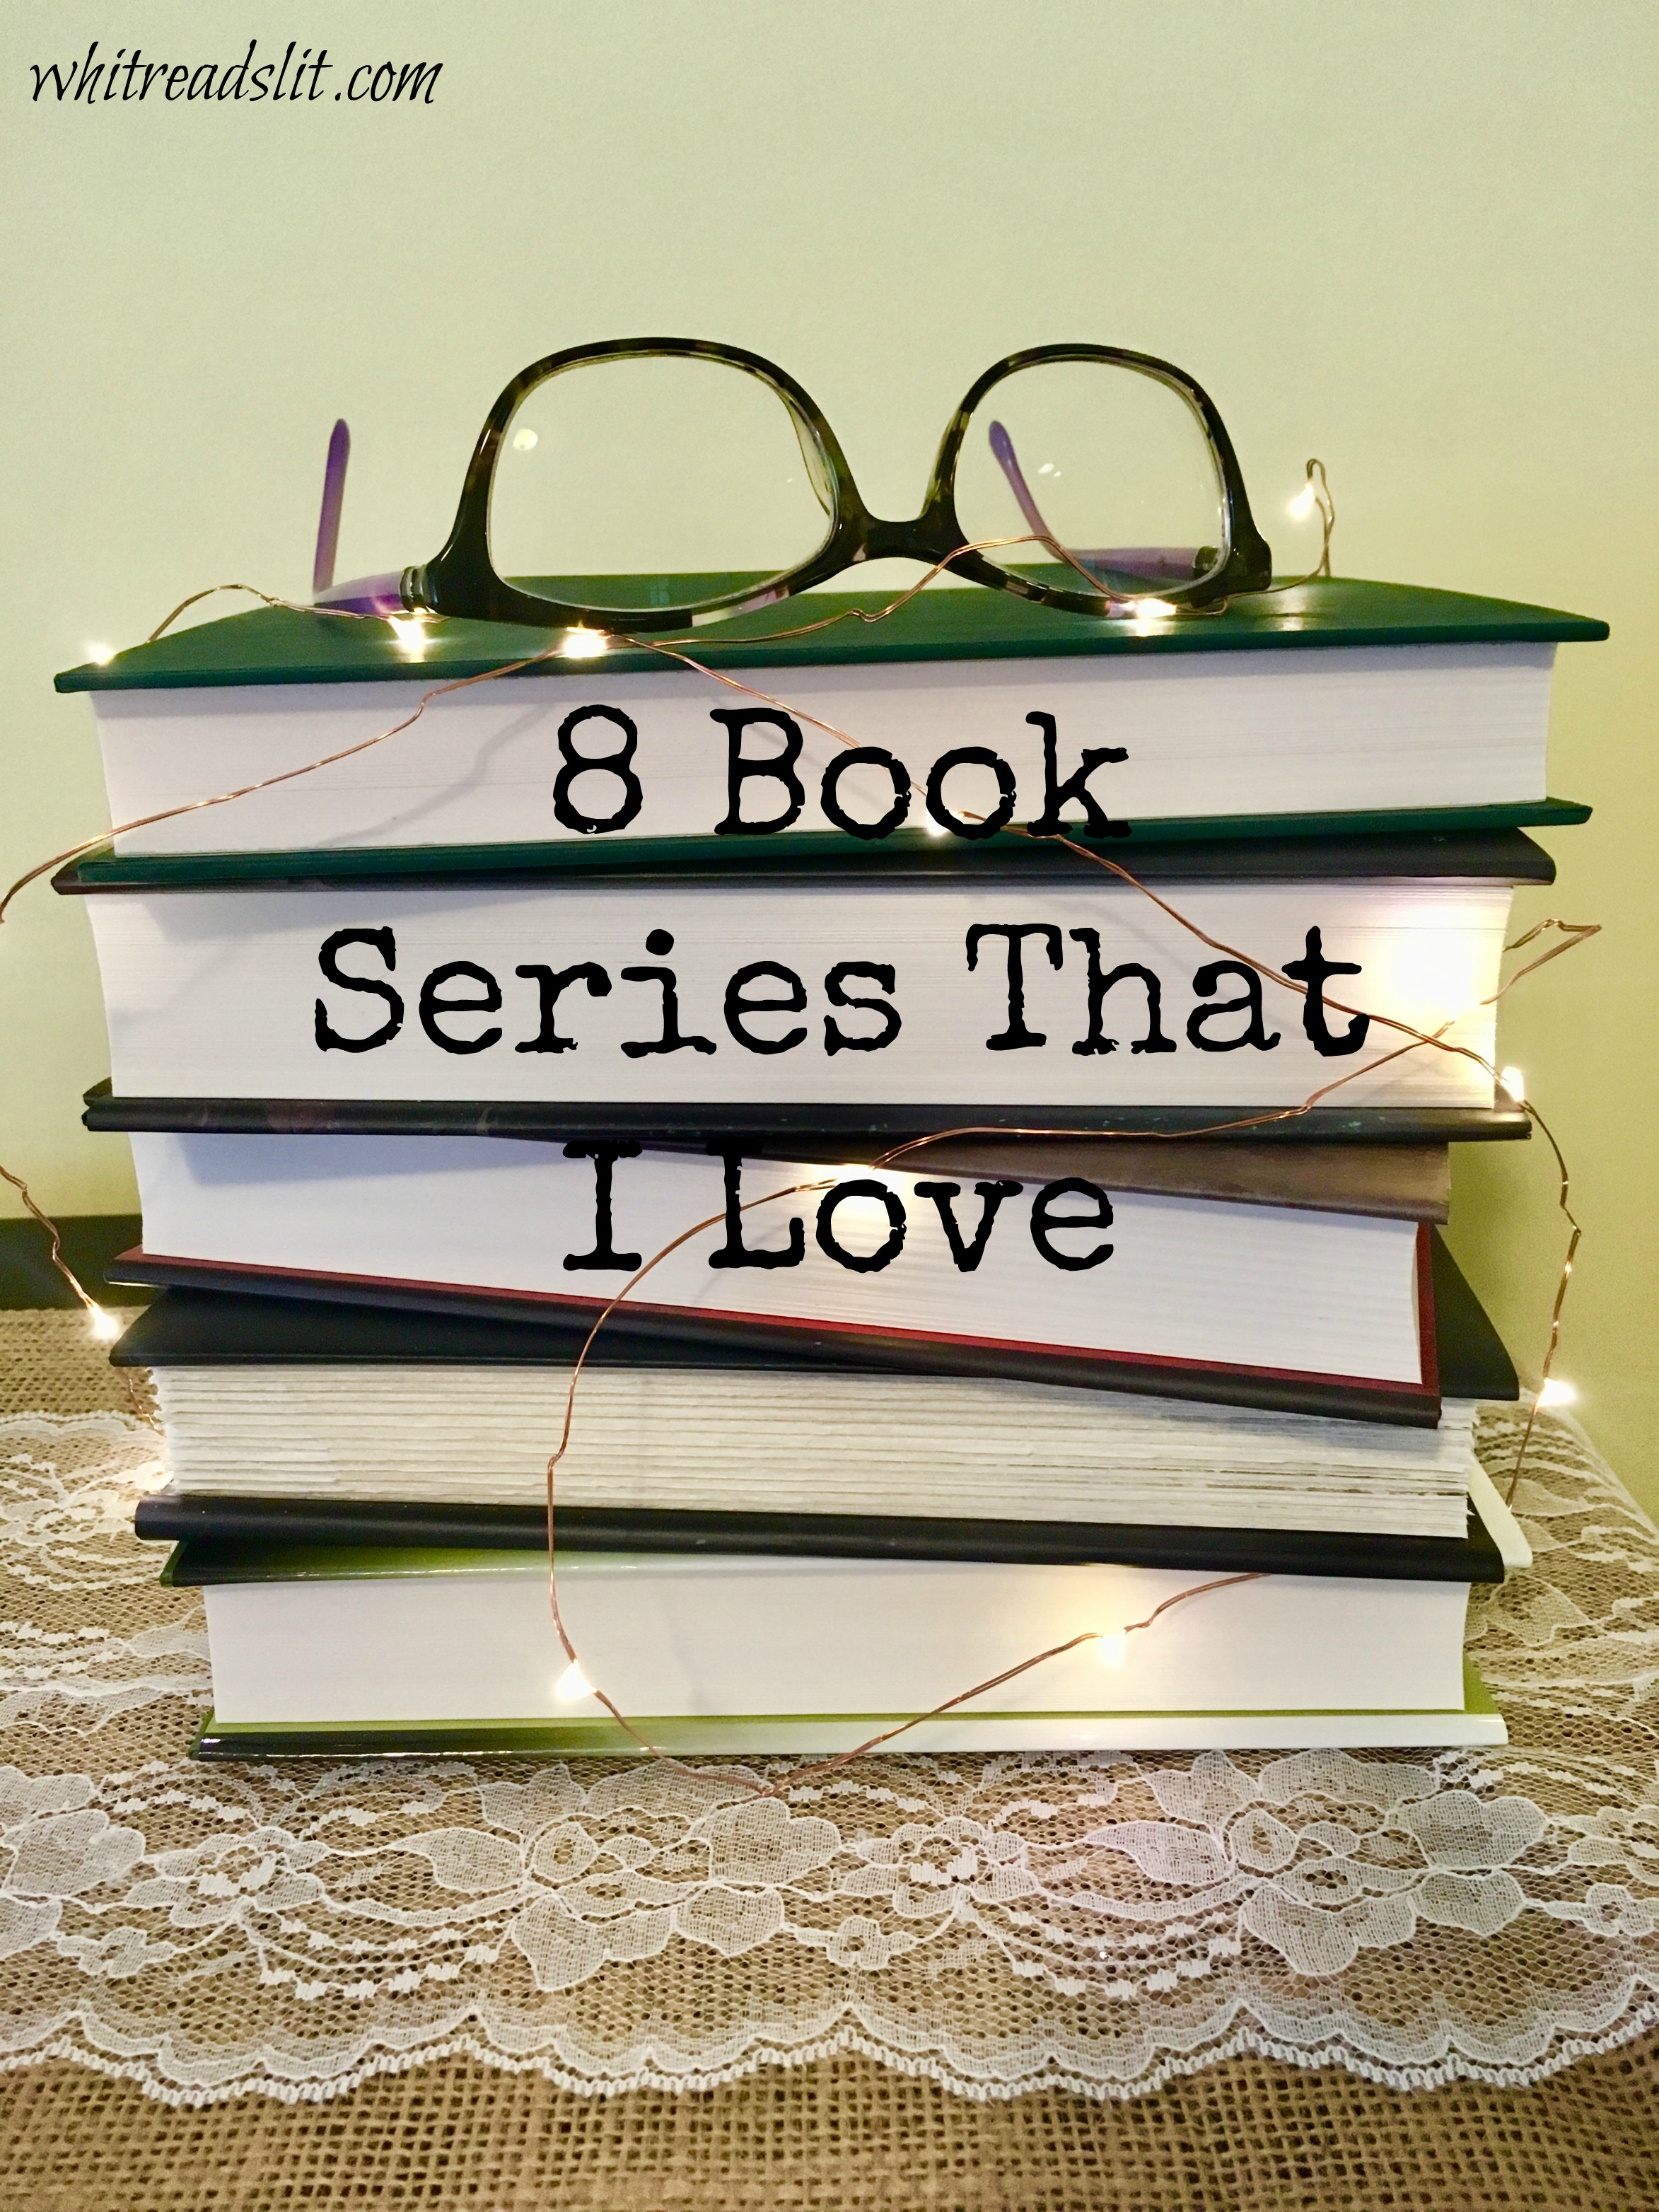 8 Book Series That I Love